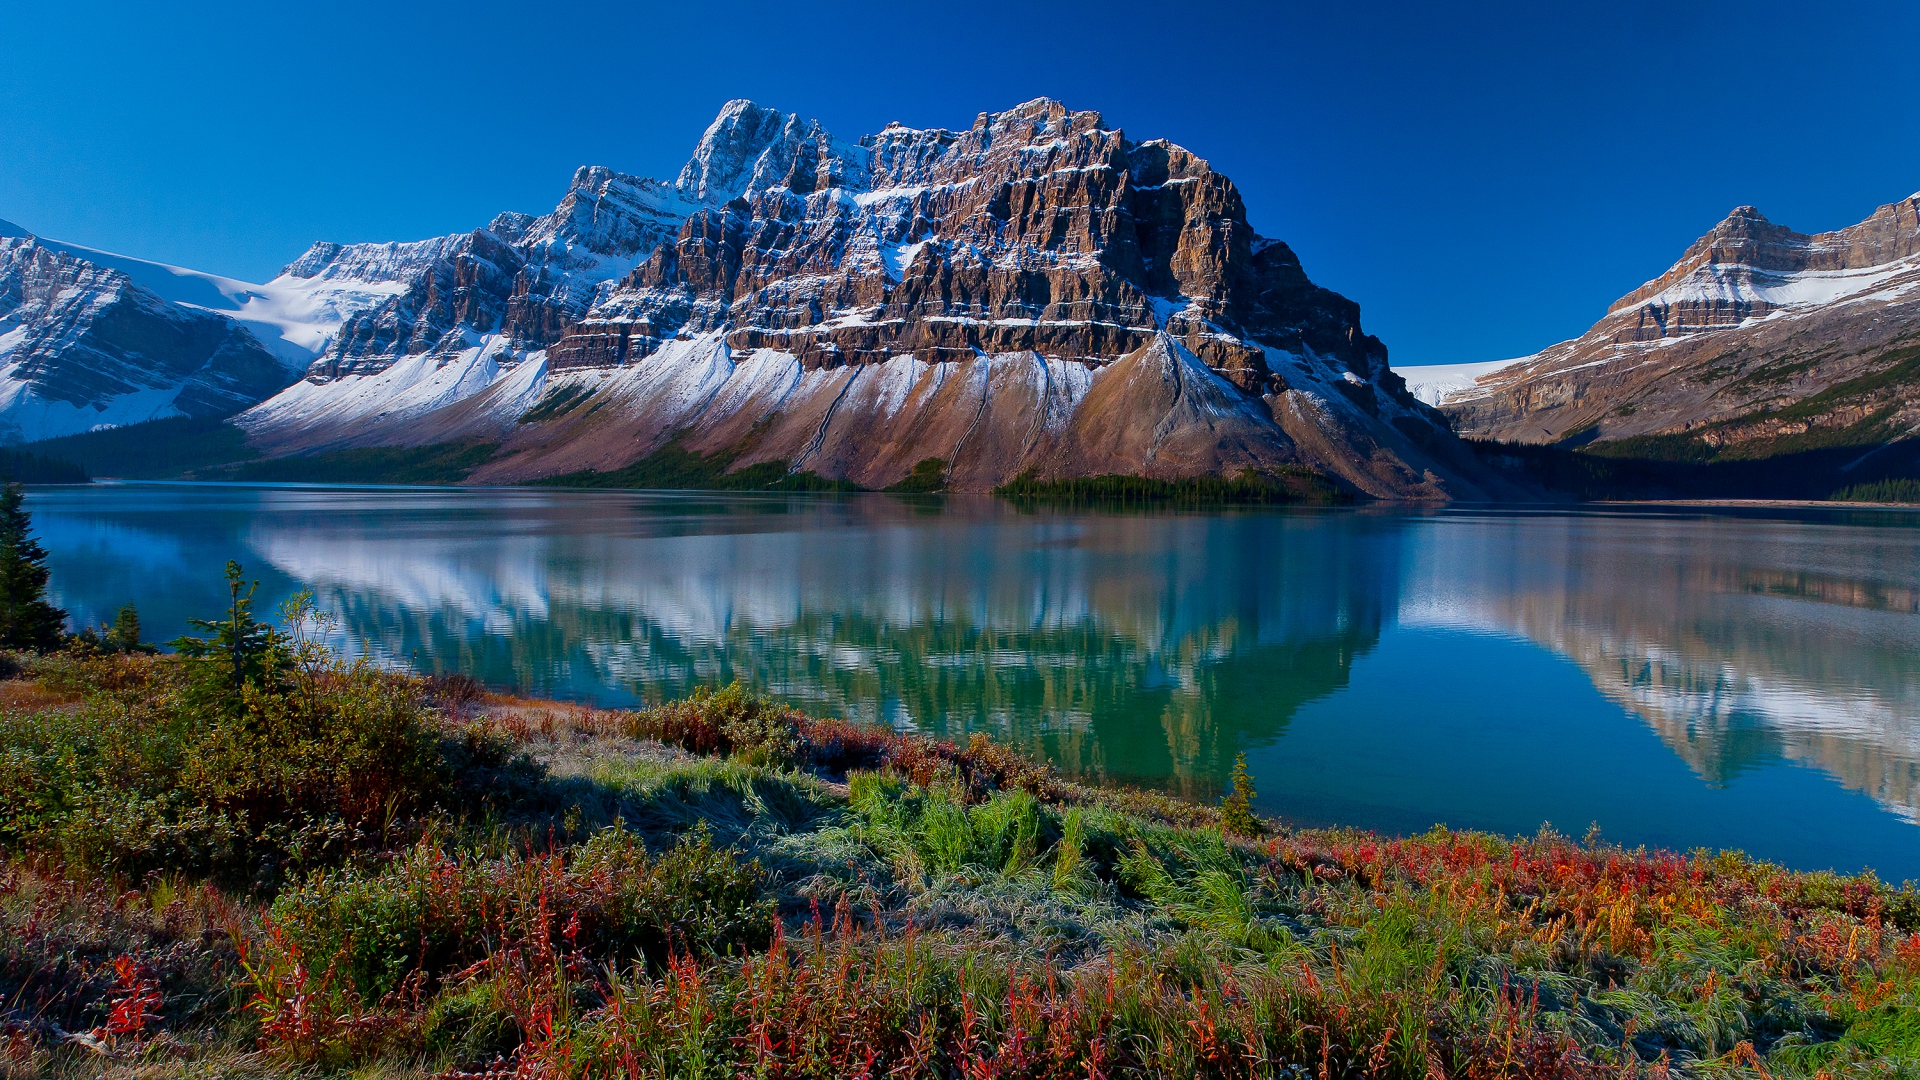 Landscape Hd Wallpapers 1080p: Download Wallpaper 1920x1080 Mountains, Nature, River